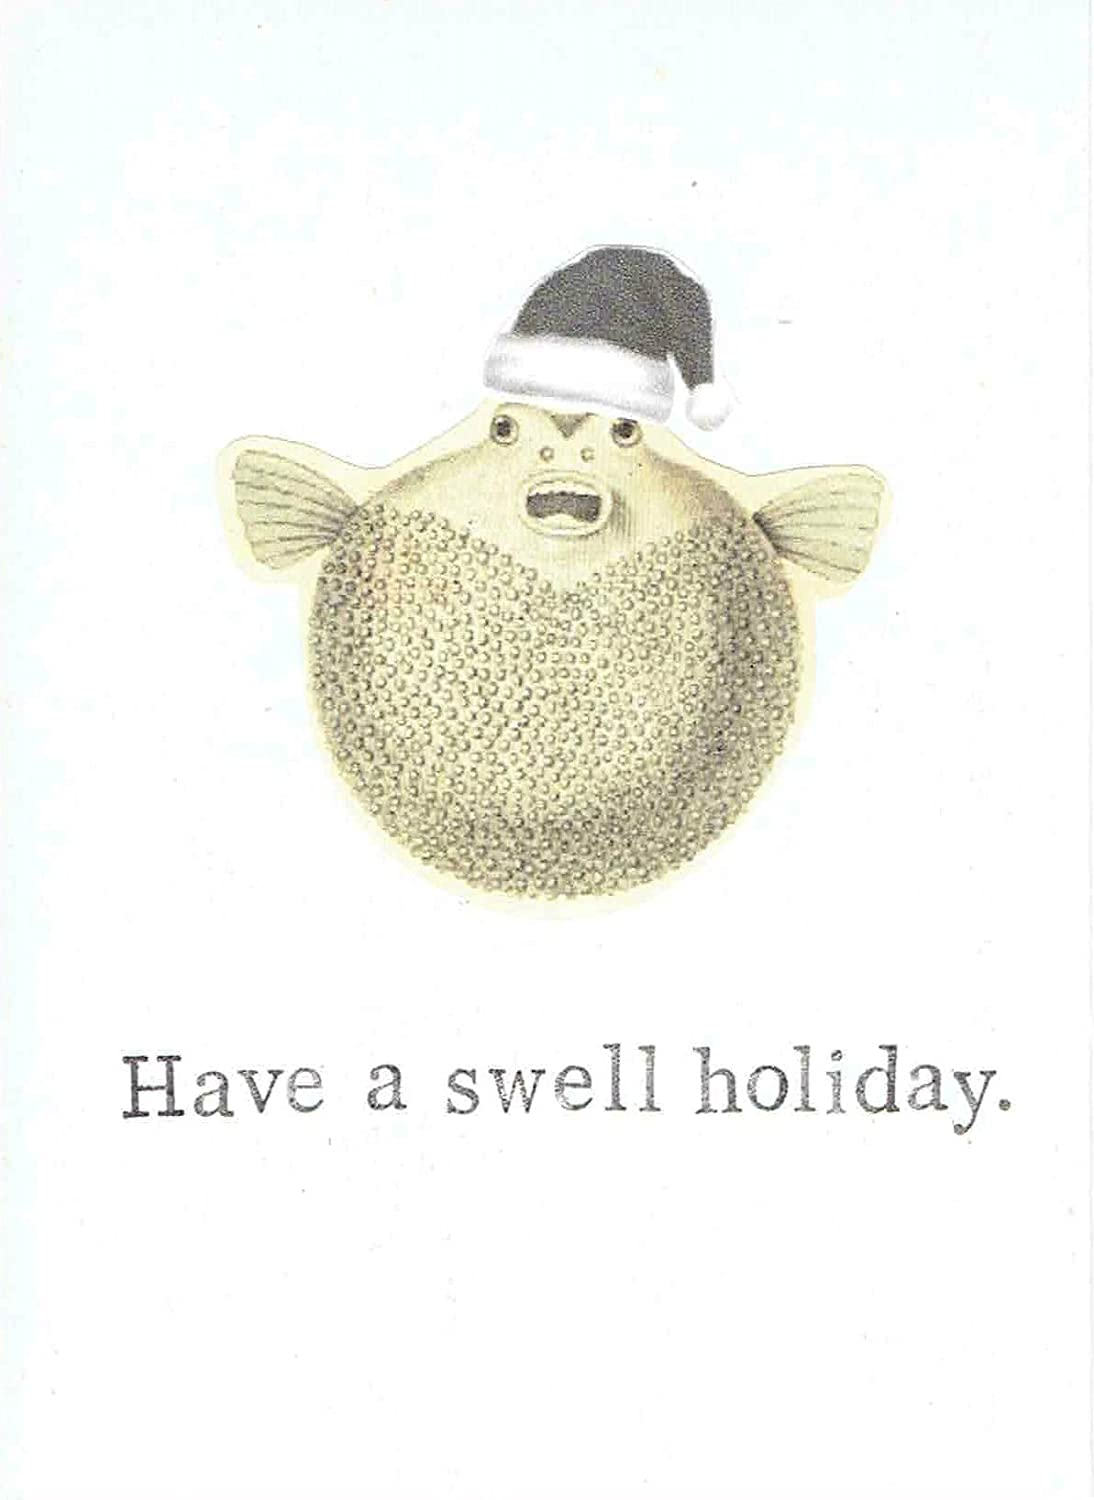 Have A Swell Holiday Funny Christmas Card Happy Holidays Seasons Greetings Weird Humor Pufferfish Pun